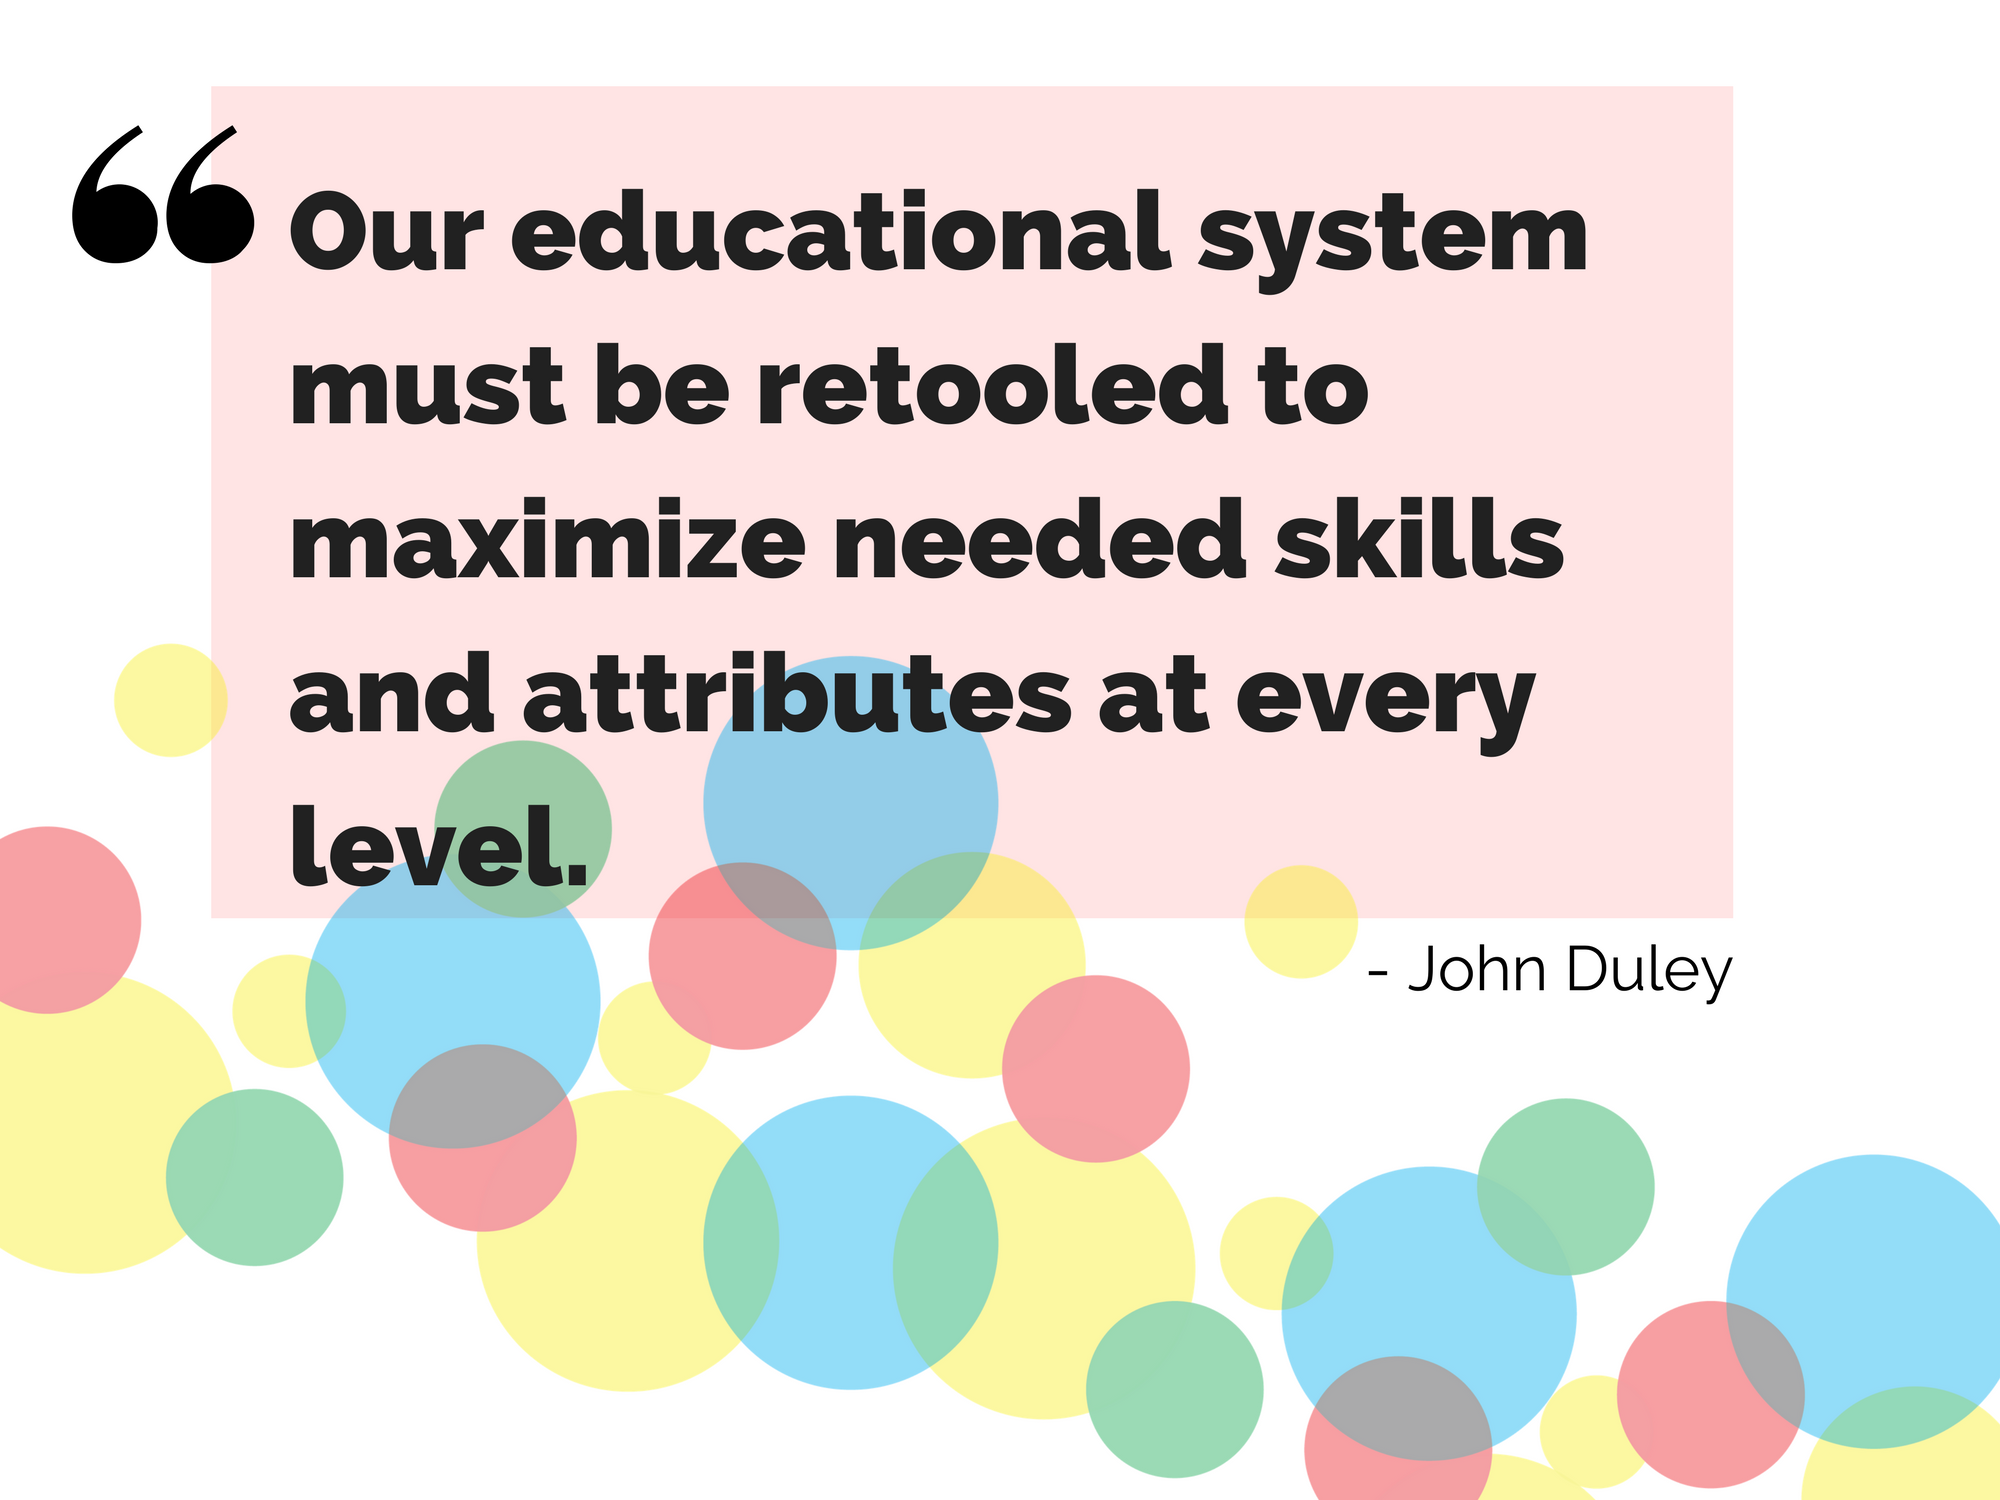 """Our educational system must be retooled to maximize needed skills and attributes at every level.""- John Duley"